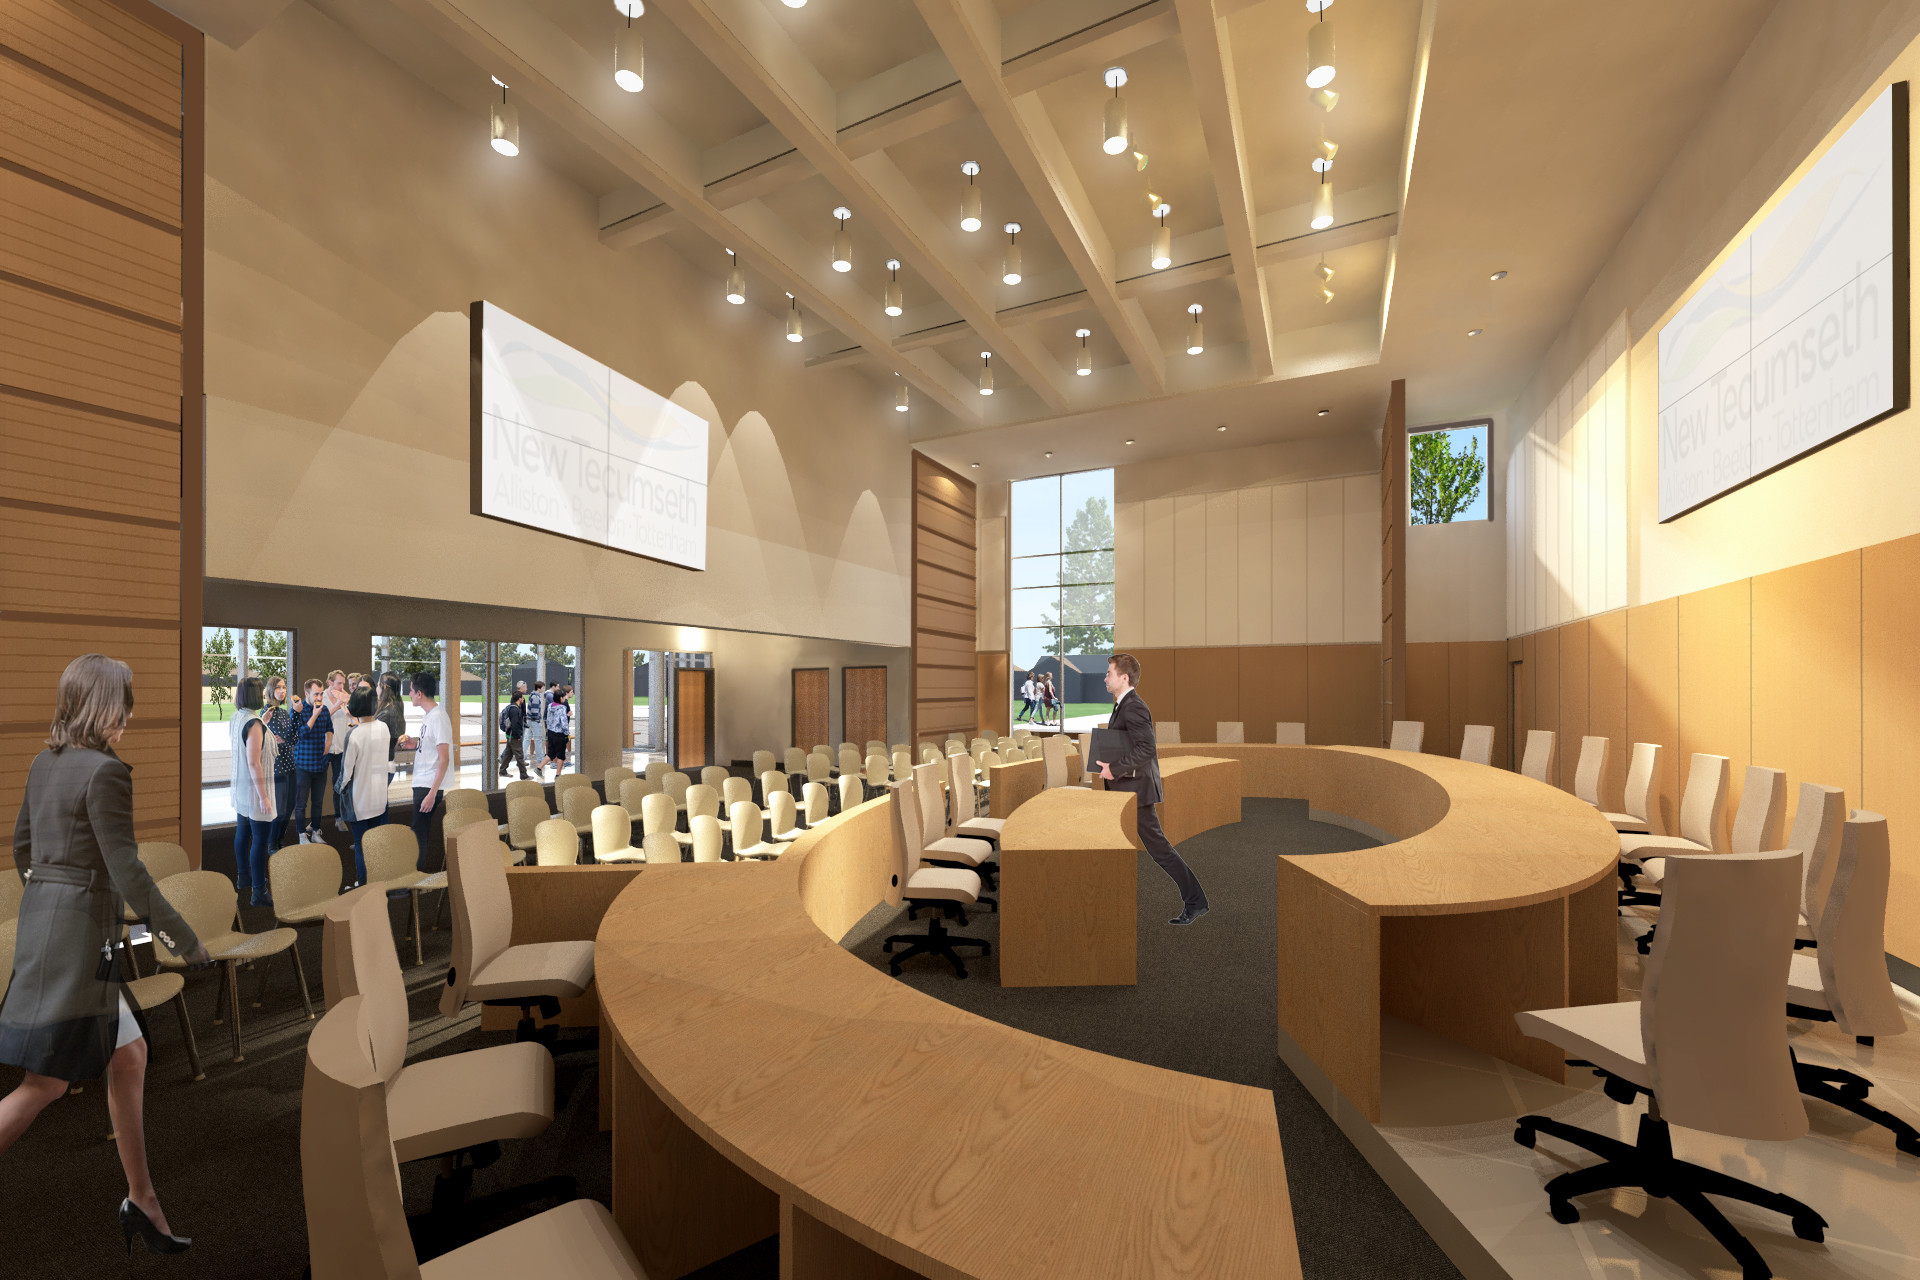 Council chamber with semi circle wood tables with white chairs, large wall mounted screens and paneled ceiling